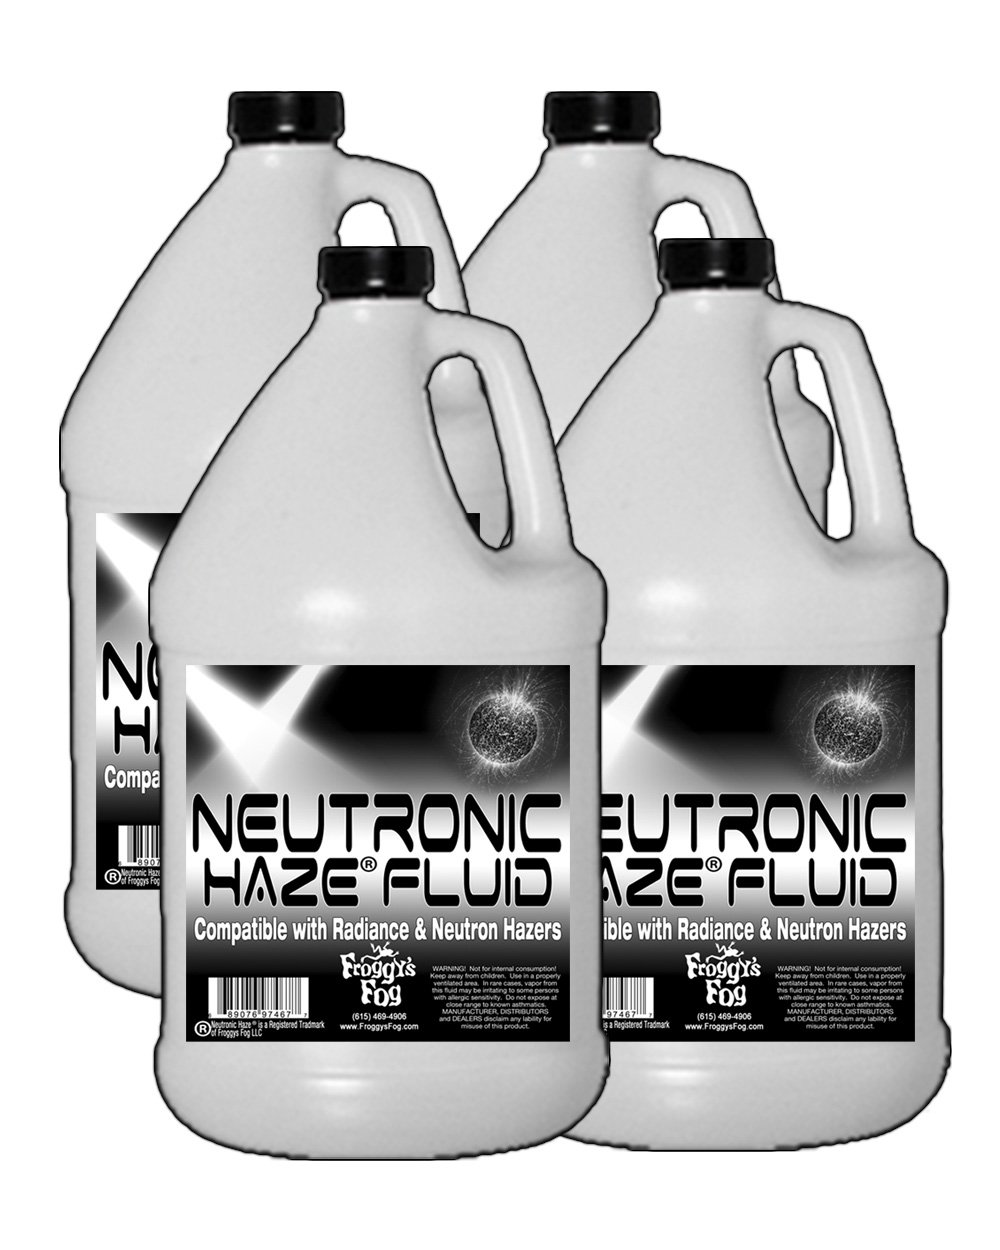 Froggys Neutronic Haze Fluid - Specially Formulated Haze Liquid - 4 Gallon Case / 15.14 Liters